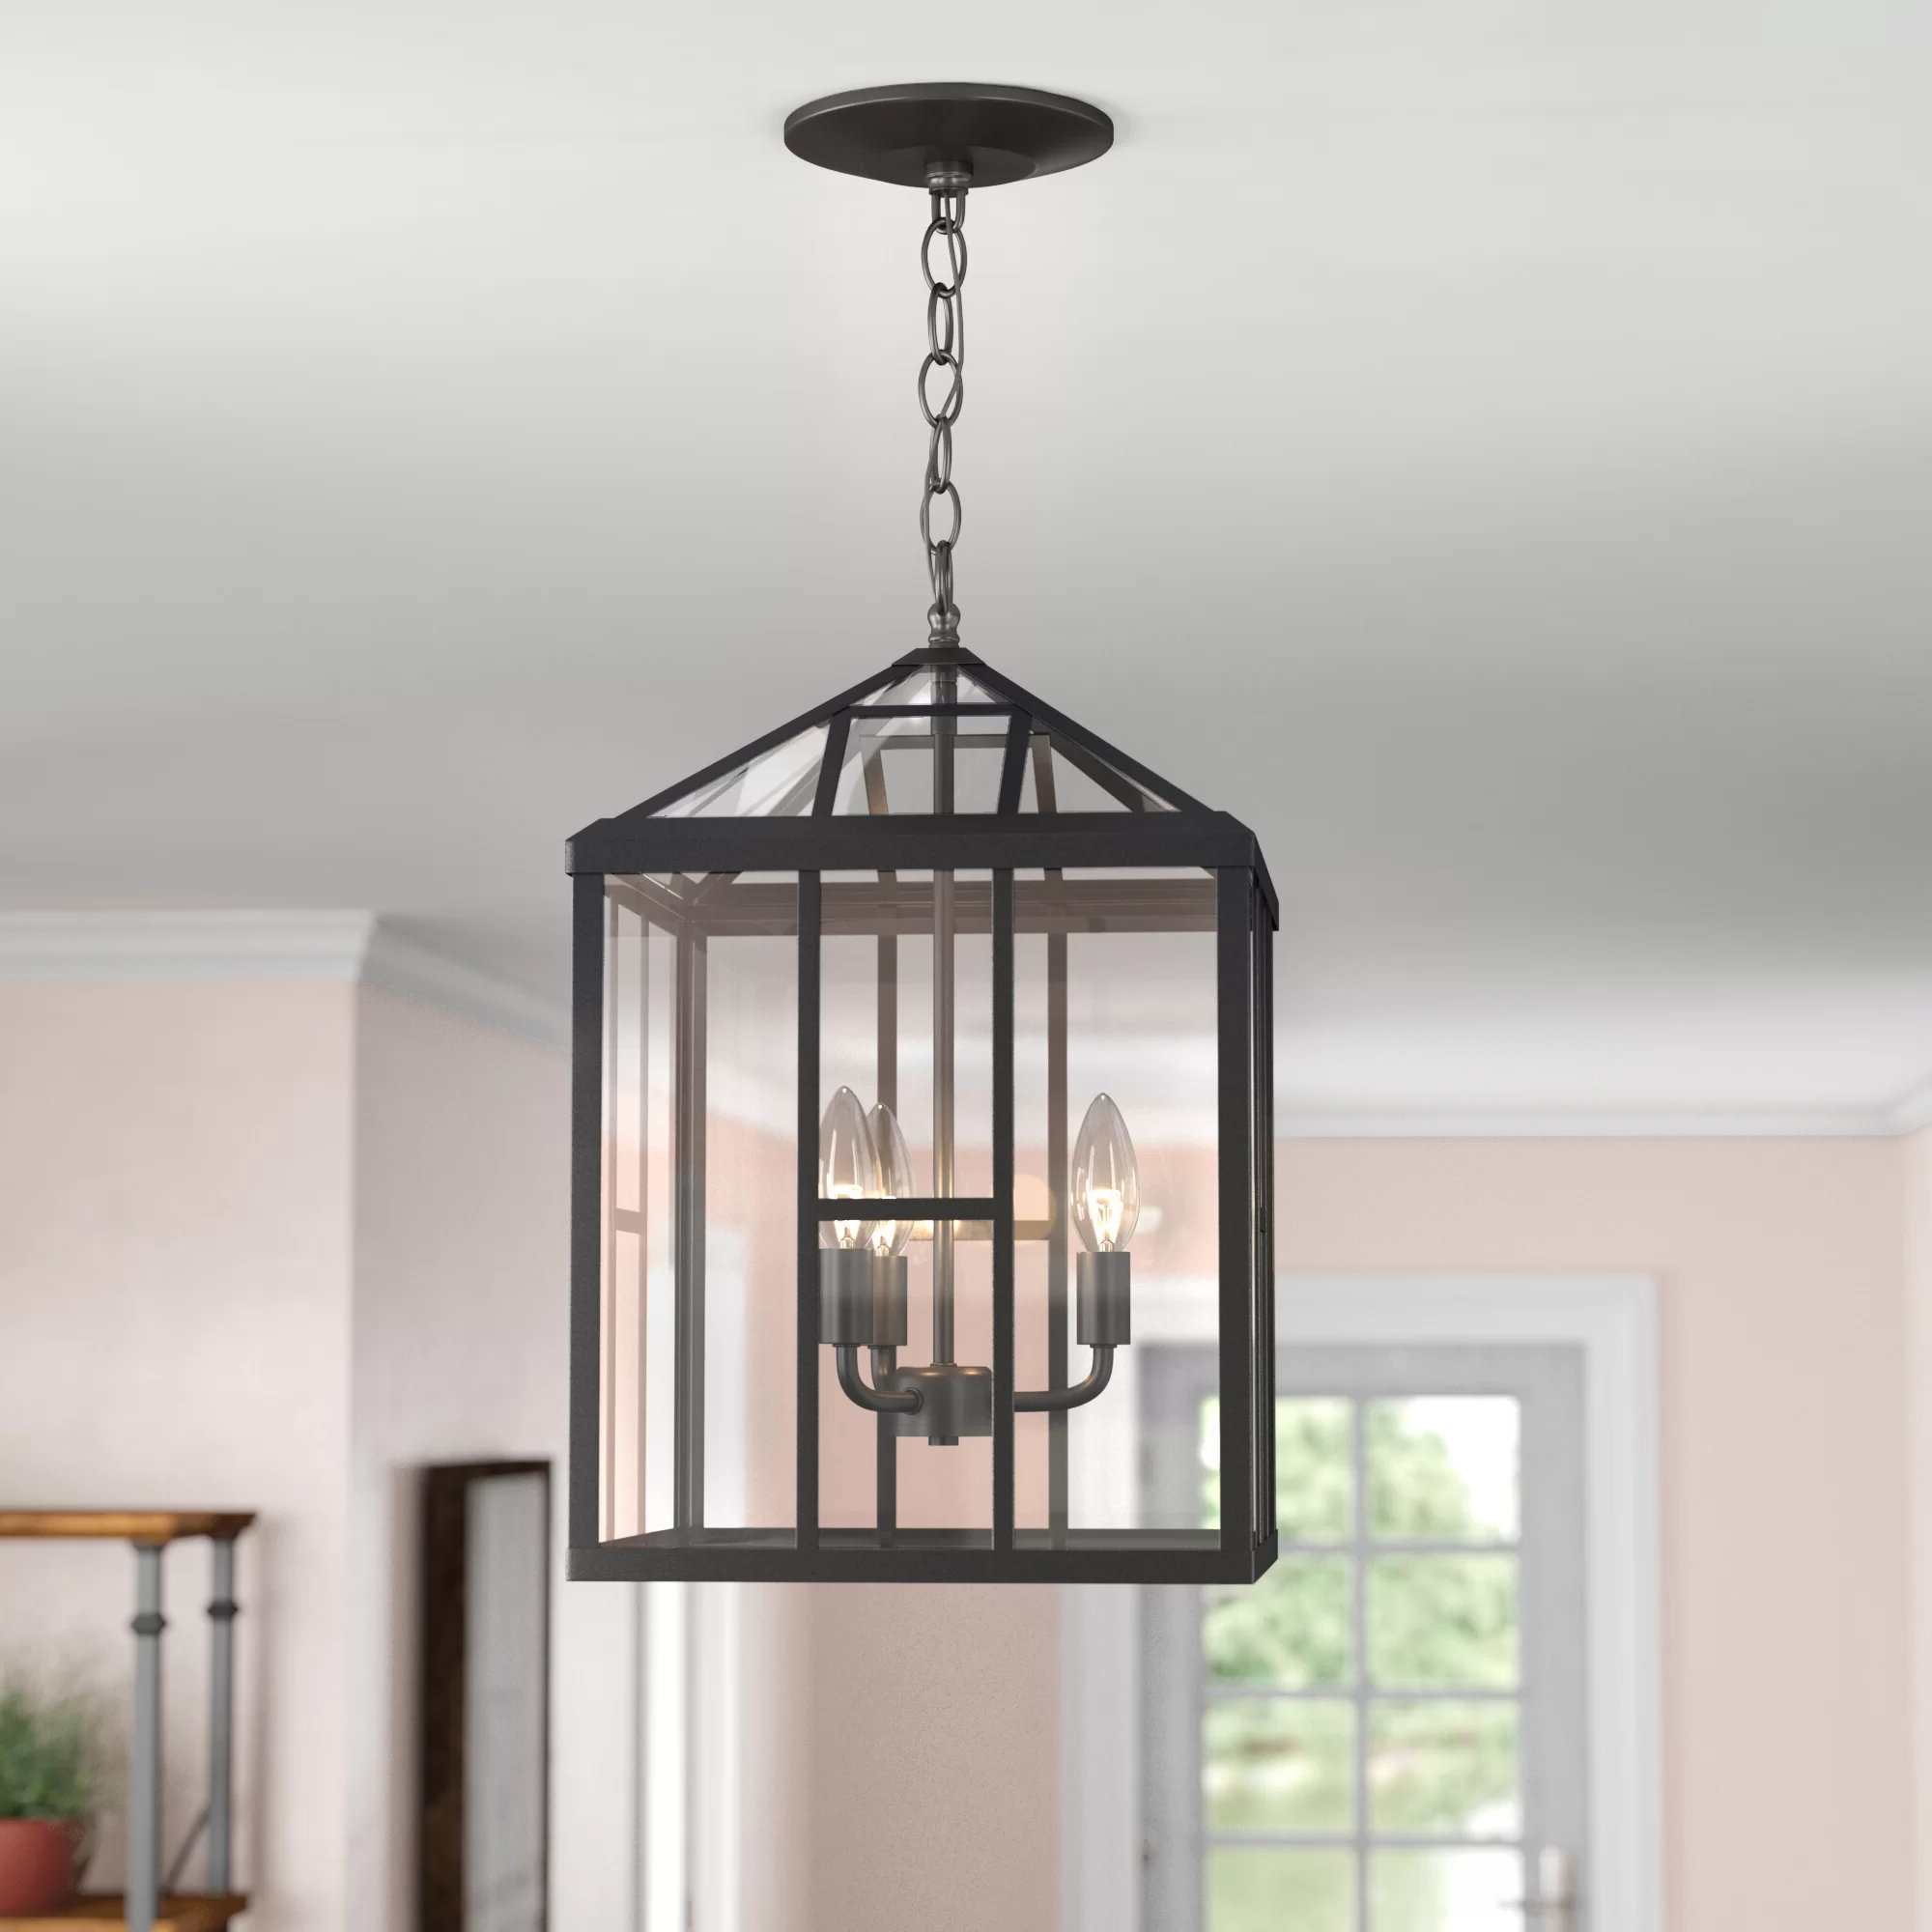 Lindsey 4 Light Drum Chandeliers Intended For Current Farmhouse & Rustic Gracie Oaks Chandeliers (View 9 of 20)